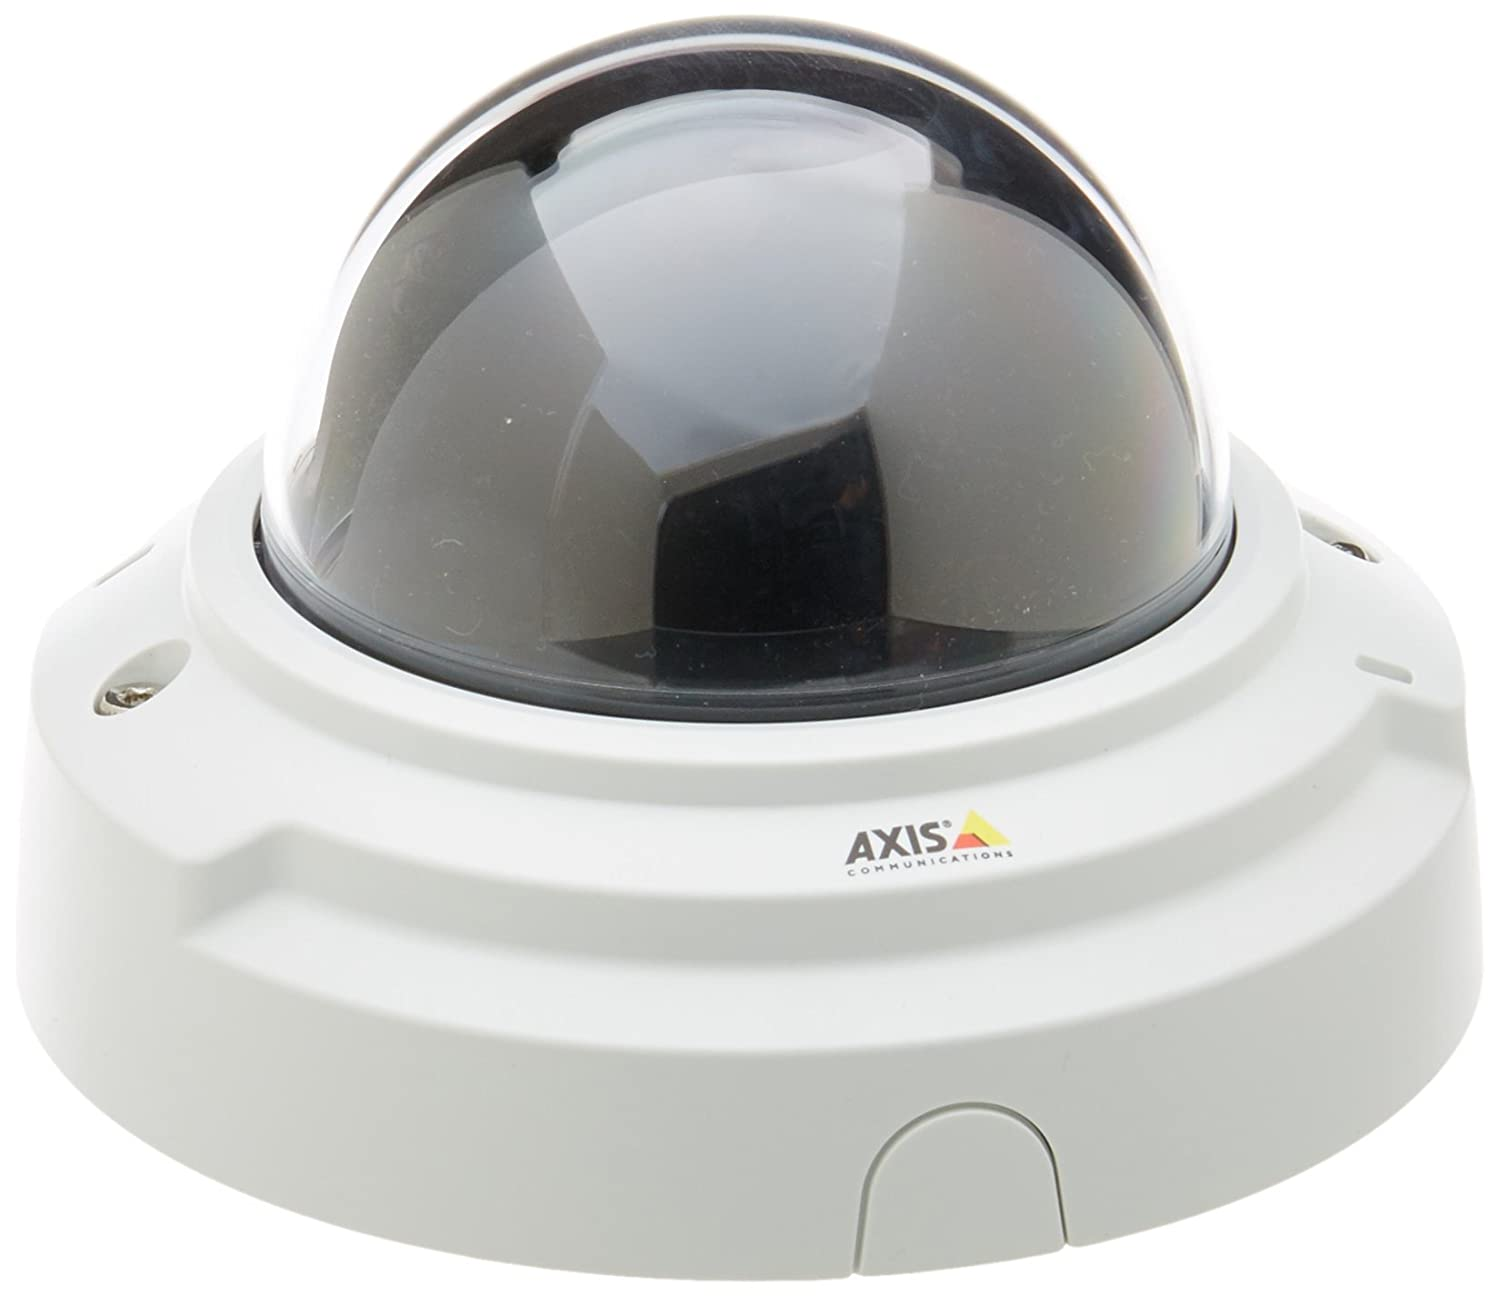 Axis Communications 0465-001 Tamper-Resistant Indoor Fixed Dome Network Camera AXIS COMMUNICATION INC.